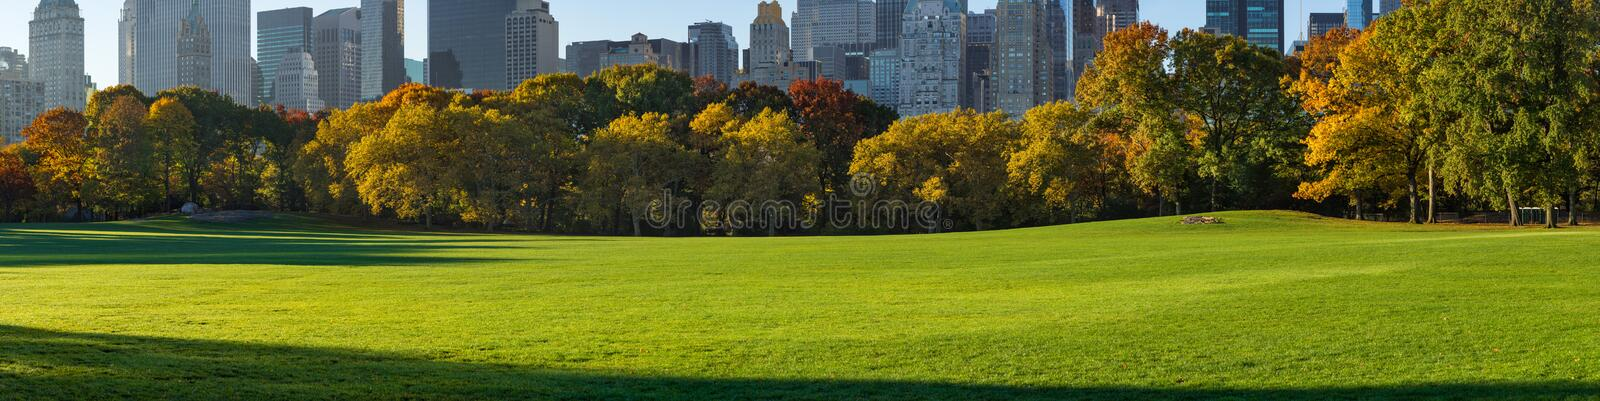 Panoramablick der Central Park-Schaf-Wiese im Sonnenlicht des frühen Morgens Manhattan, New York City stockfoto